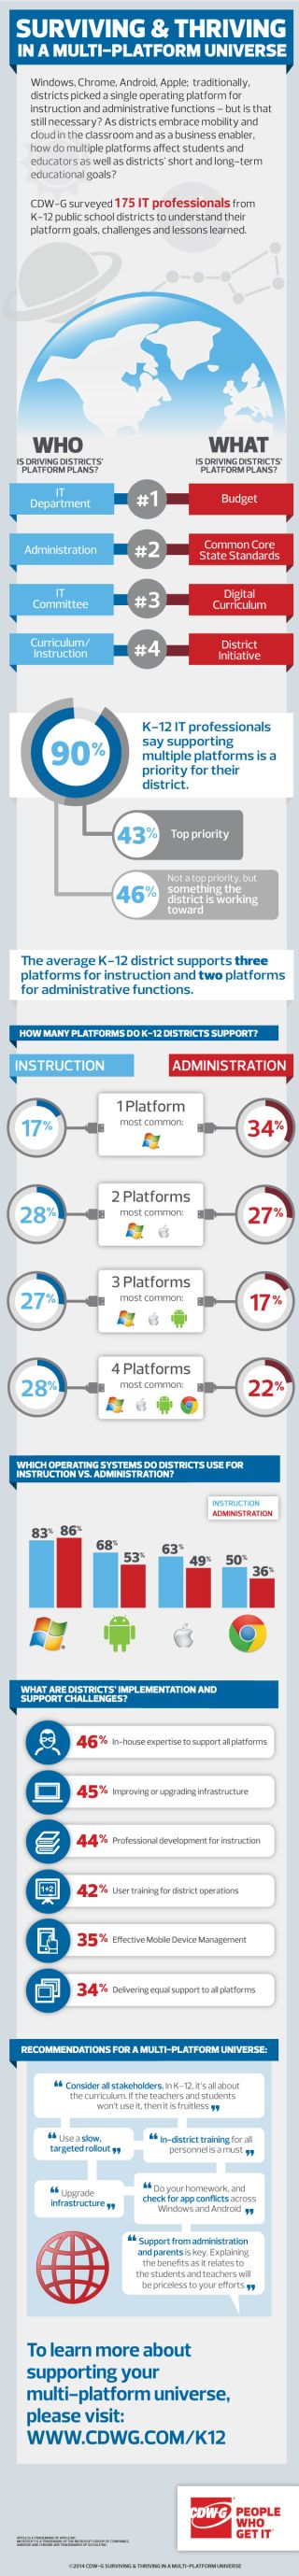 Infographic: Surviving And Thriving in a Multi-platform Universe